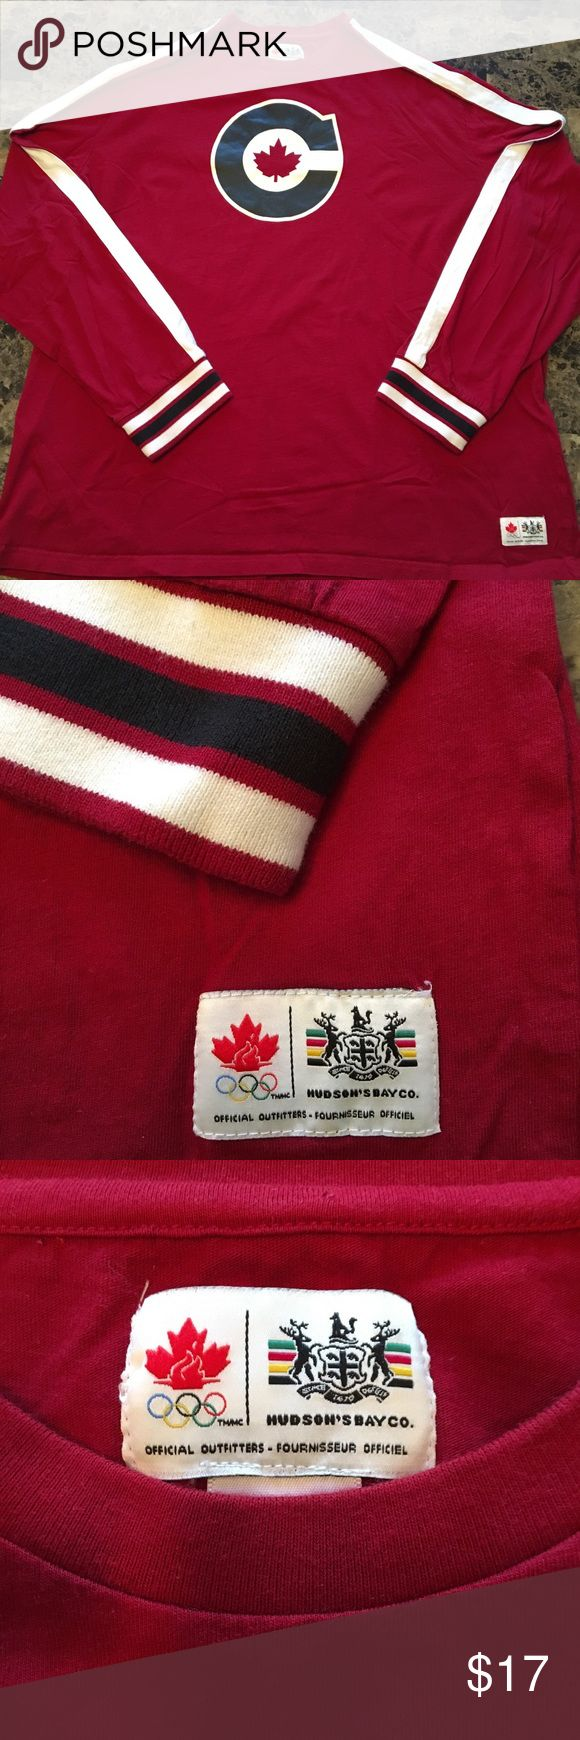 Team Canada Olympic shirt official Get ready for next years Olympic Games with this official team canada shirt. Like-new! This shirt features team Canada's logo on the chest with white striping along the entire sleeve, with white and black striped cuffs. Official Olympic logs on front and back. Please feel free to ask any questions, thanks. Hudson's Bay Shirts Tees - Long Sleeve